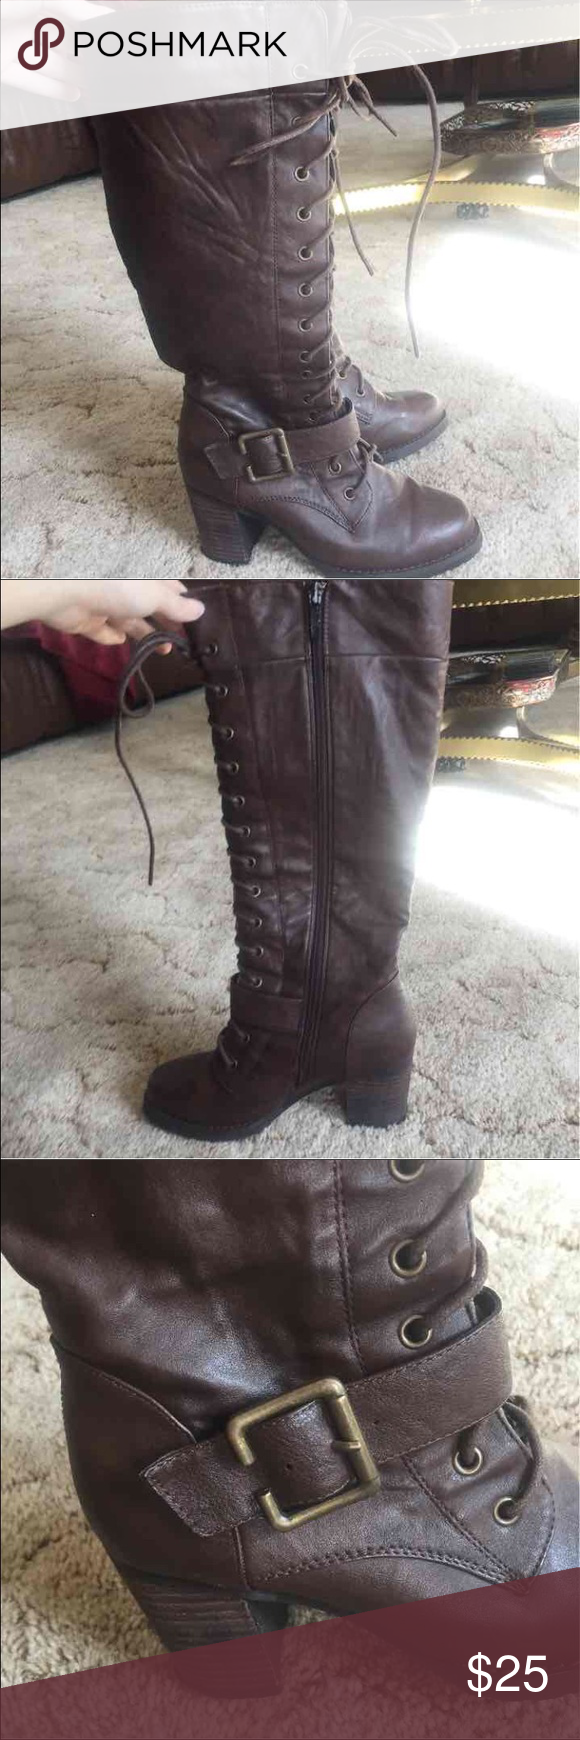 Tall Heeled Lace Up Leather Boots Tall heeled lace up leather brown boots with side zip closure and buckle detail. Wanted brand size 6. Gently used. Wanted Shoes Lace Up Boots